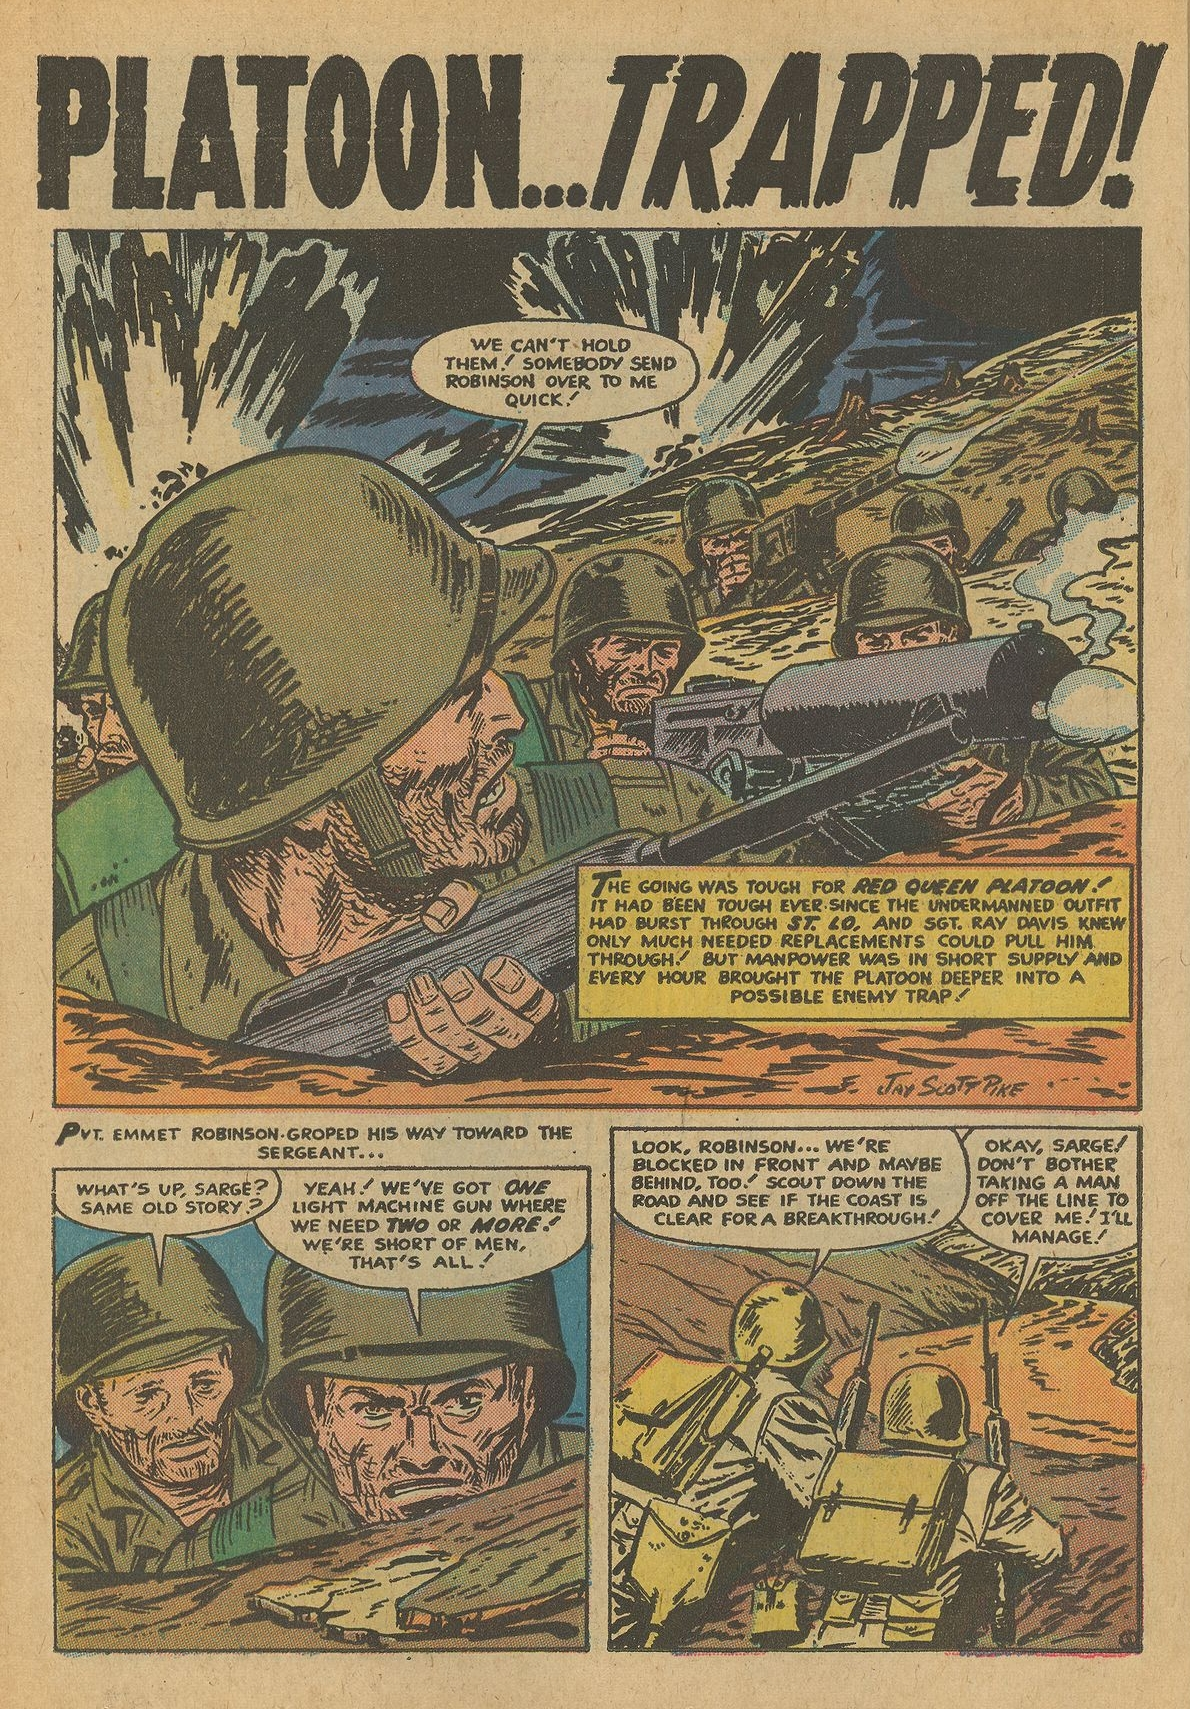 """Battleground (1954) #18, interior story """"Platoon Trapped"""" - penciled & inked by Jay Scott Pike."""